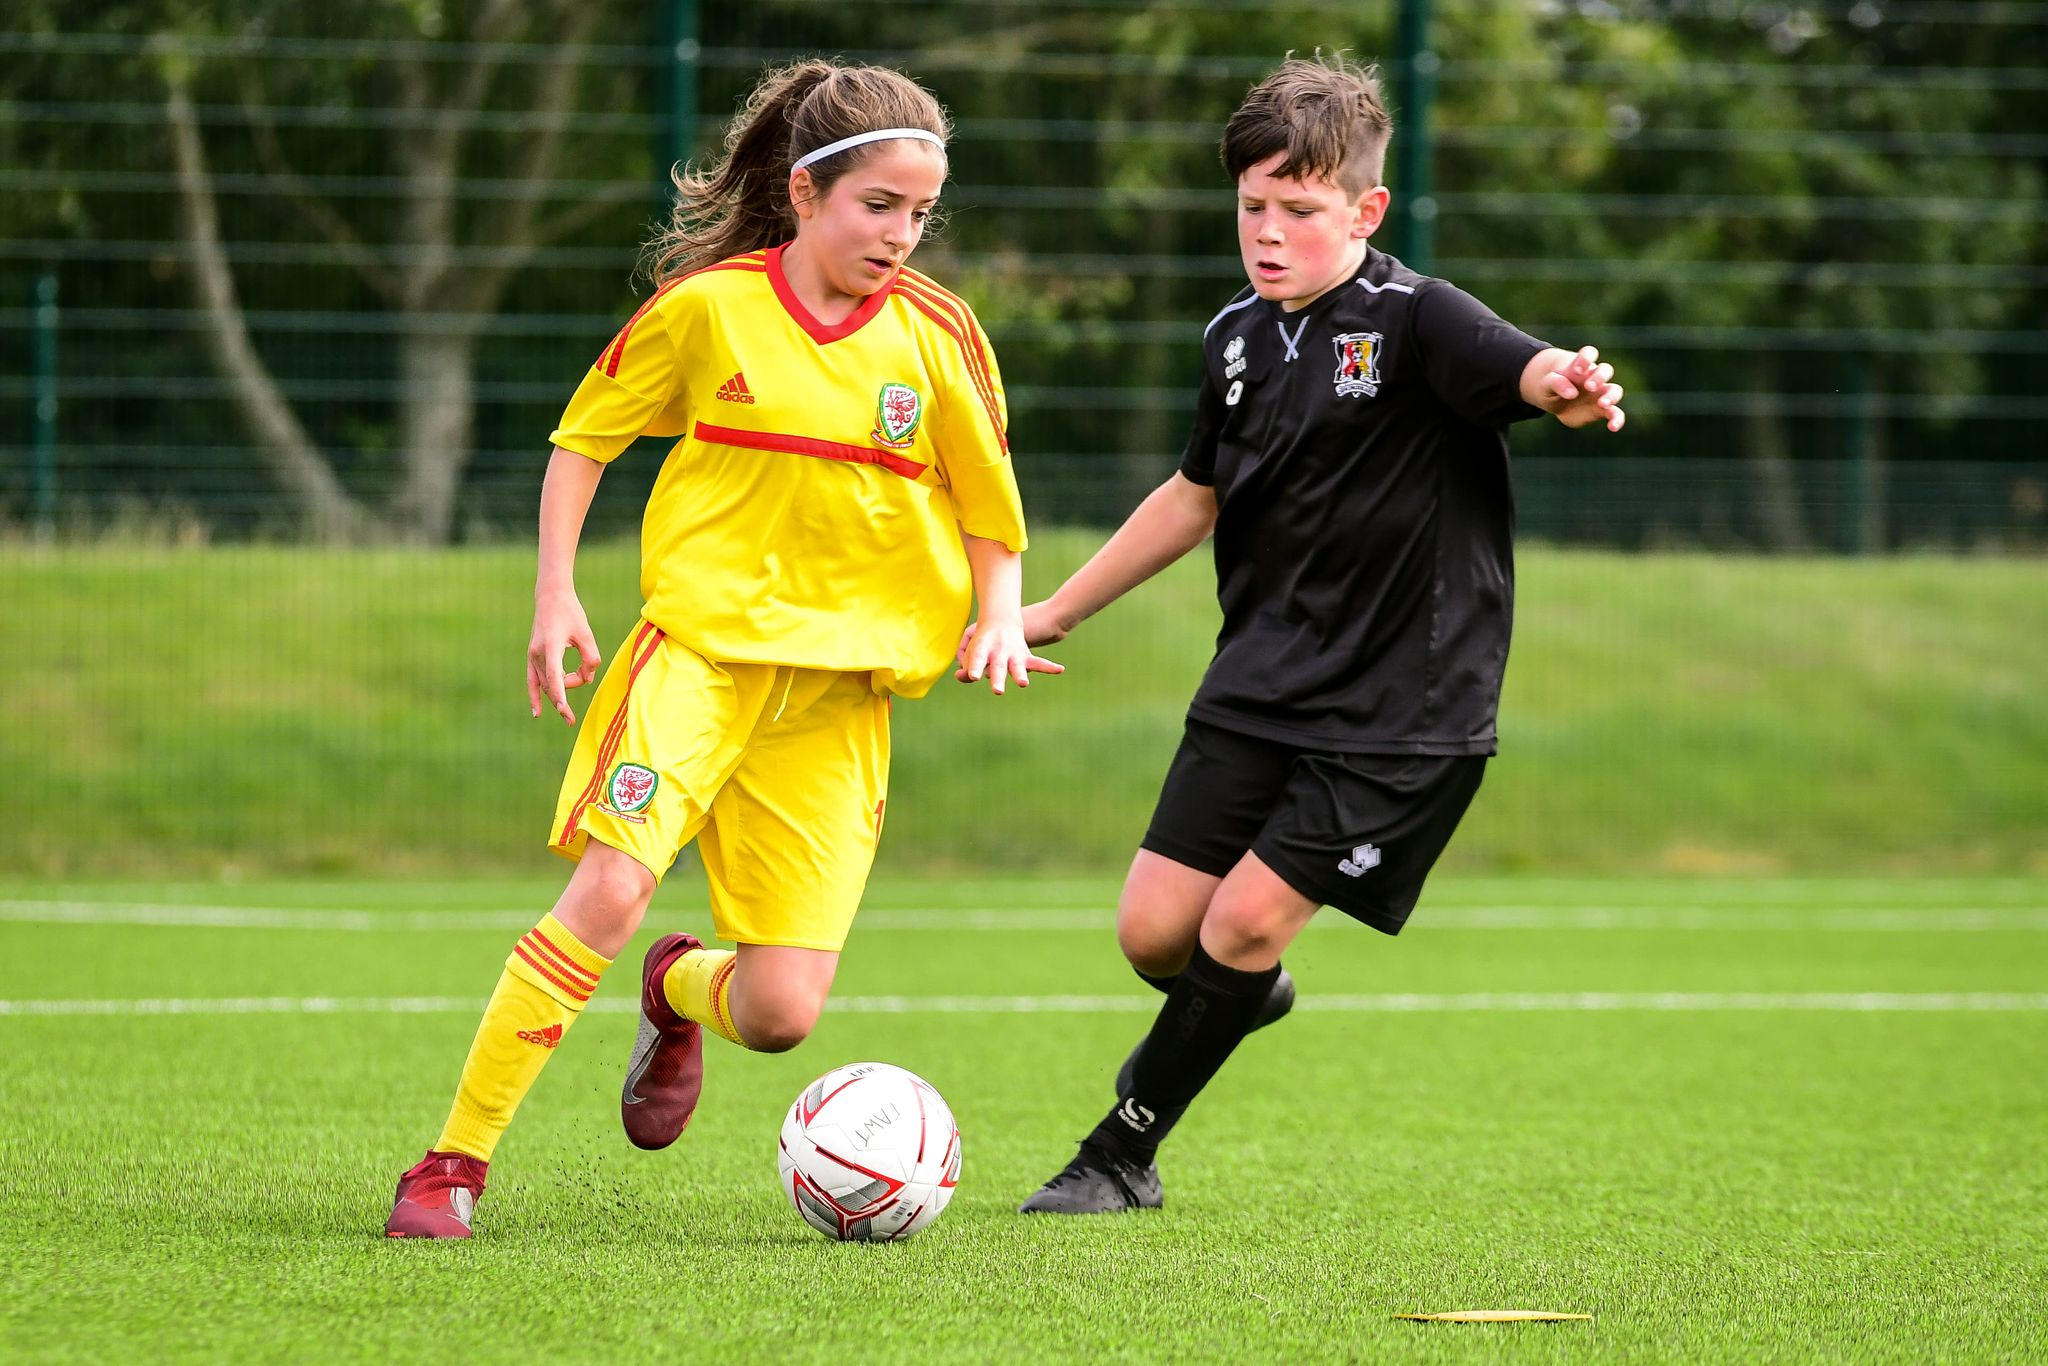 Key changes to elite girls' football in Wales